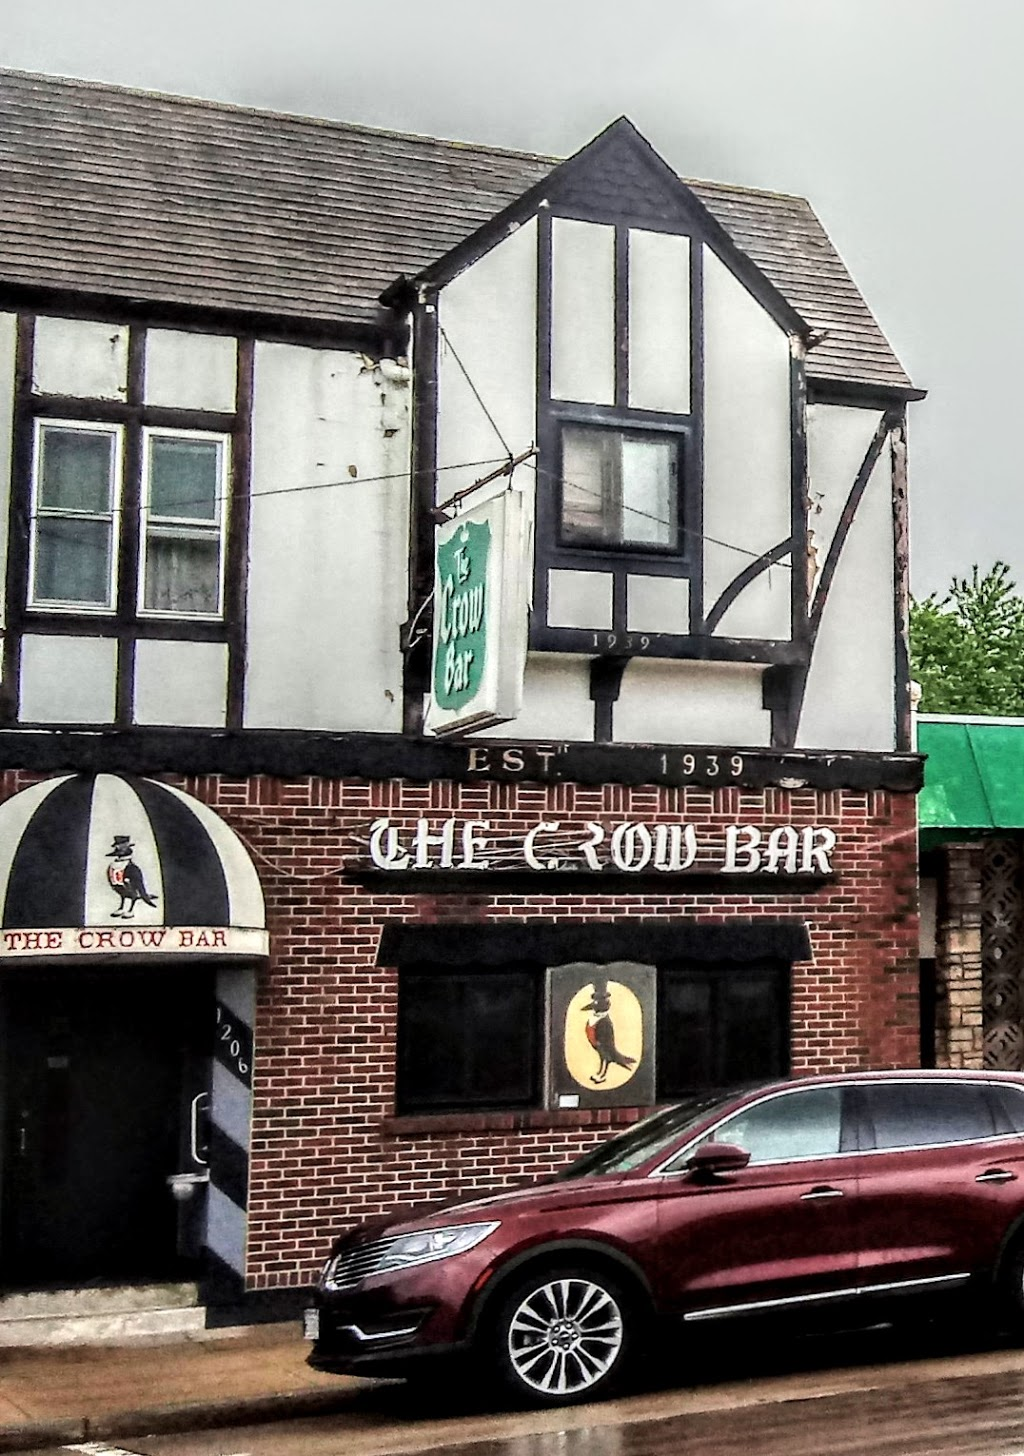 Crow Bar | restaurant | 1206 Superior Ave, Tomah, WI 54660, USA | 6083726830 OR +1 608-372-6830